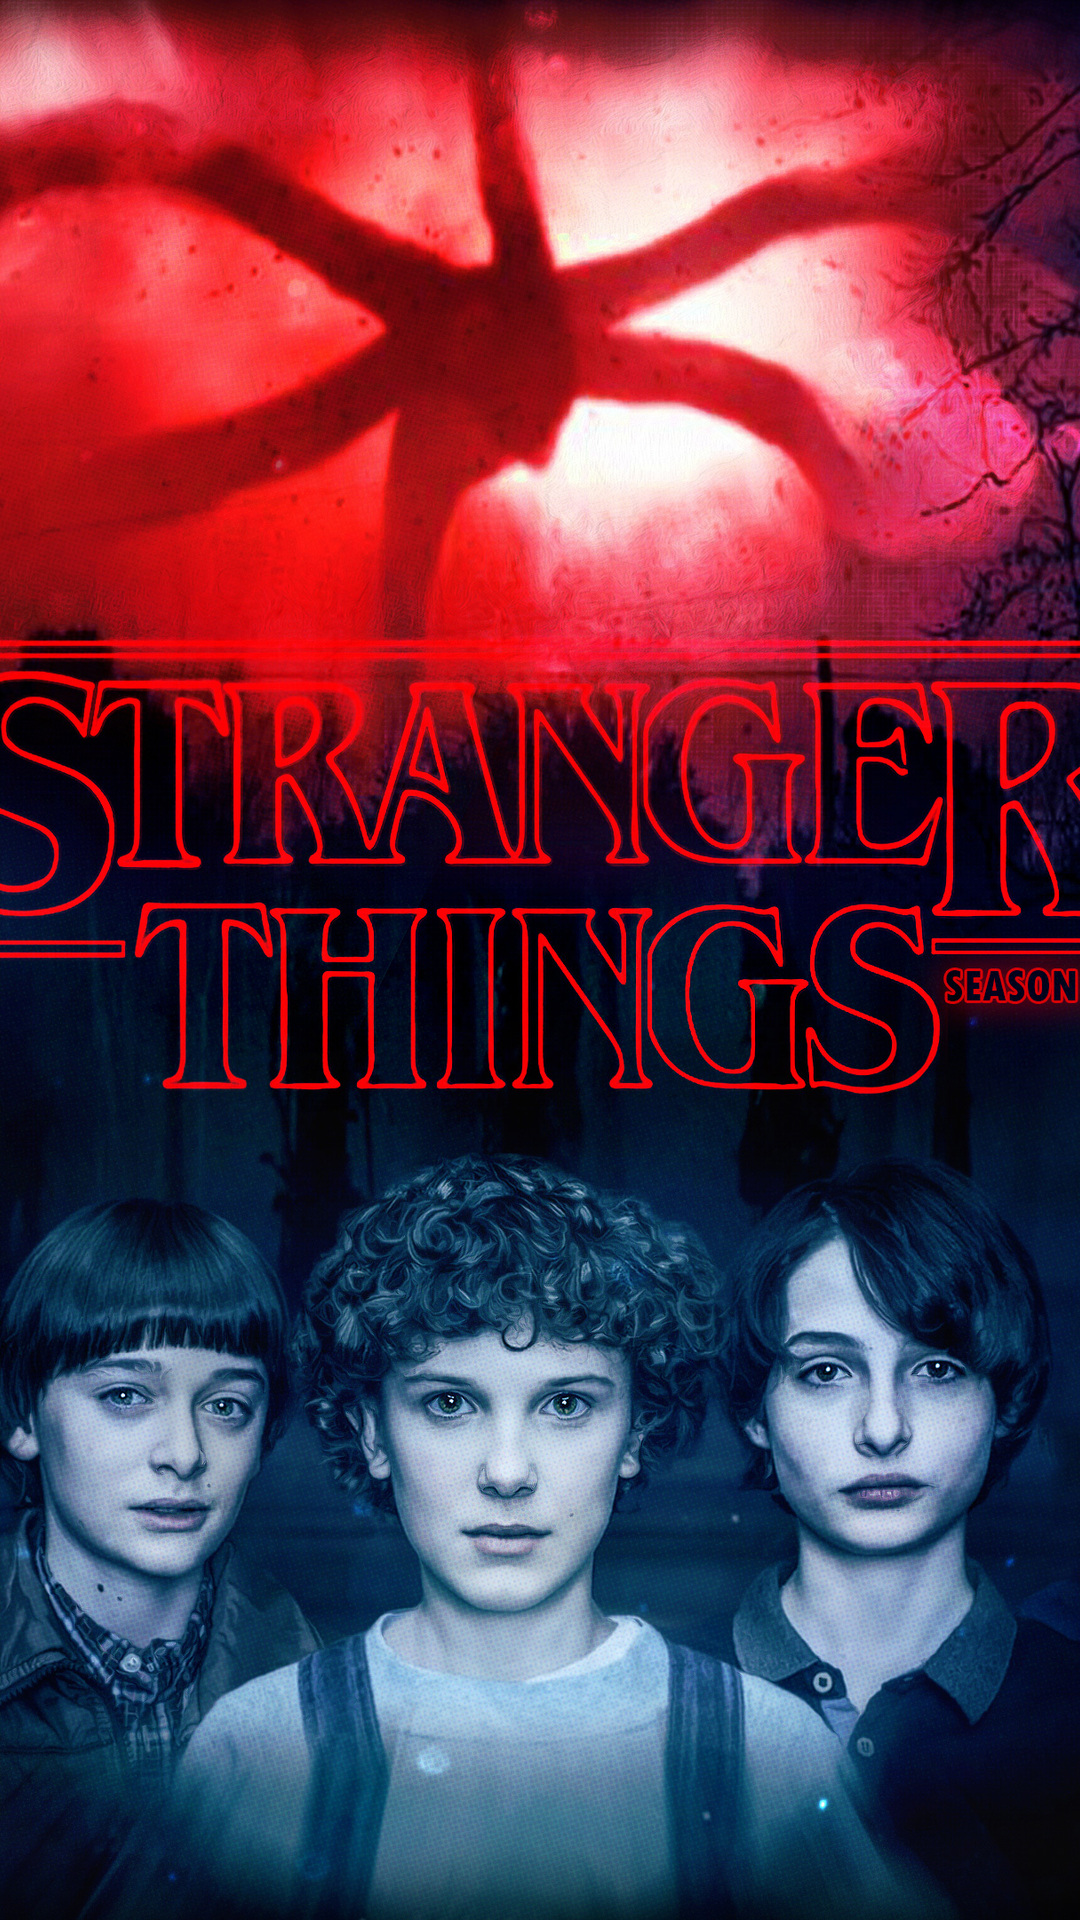 Stranger Things Wallpaper Iphone